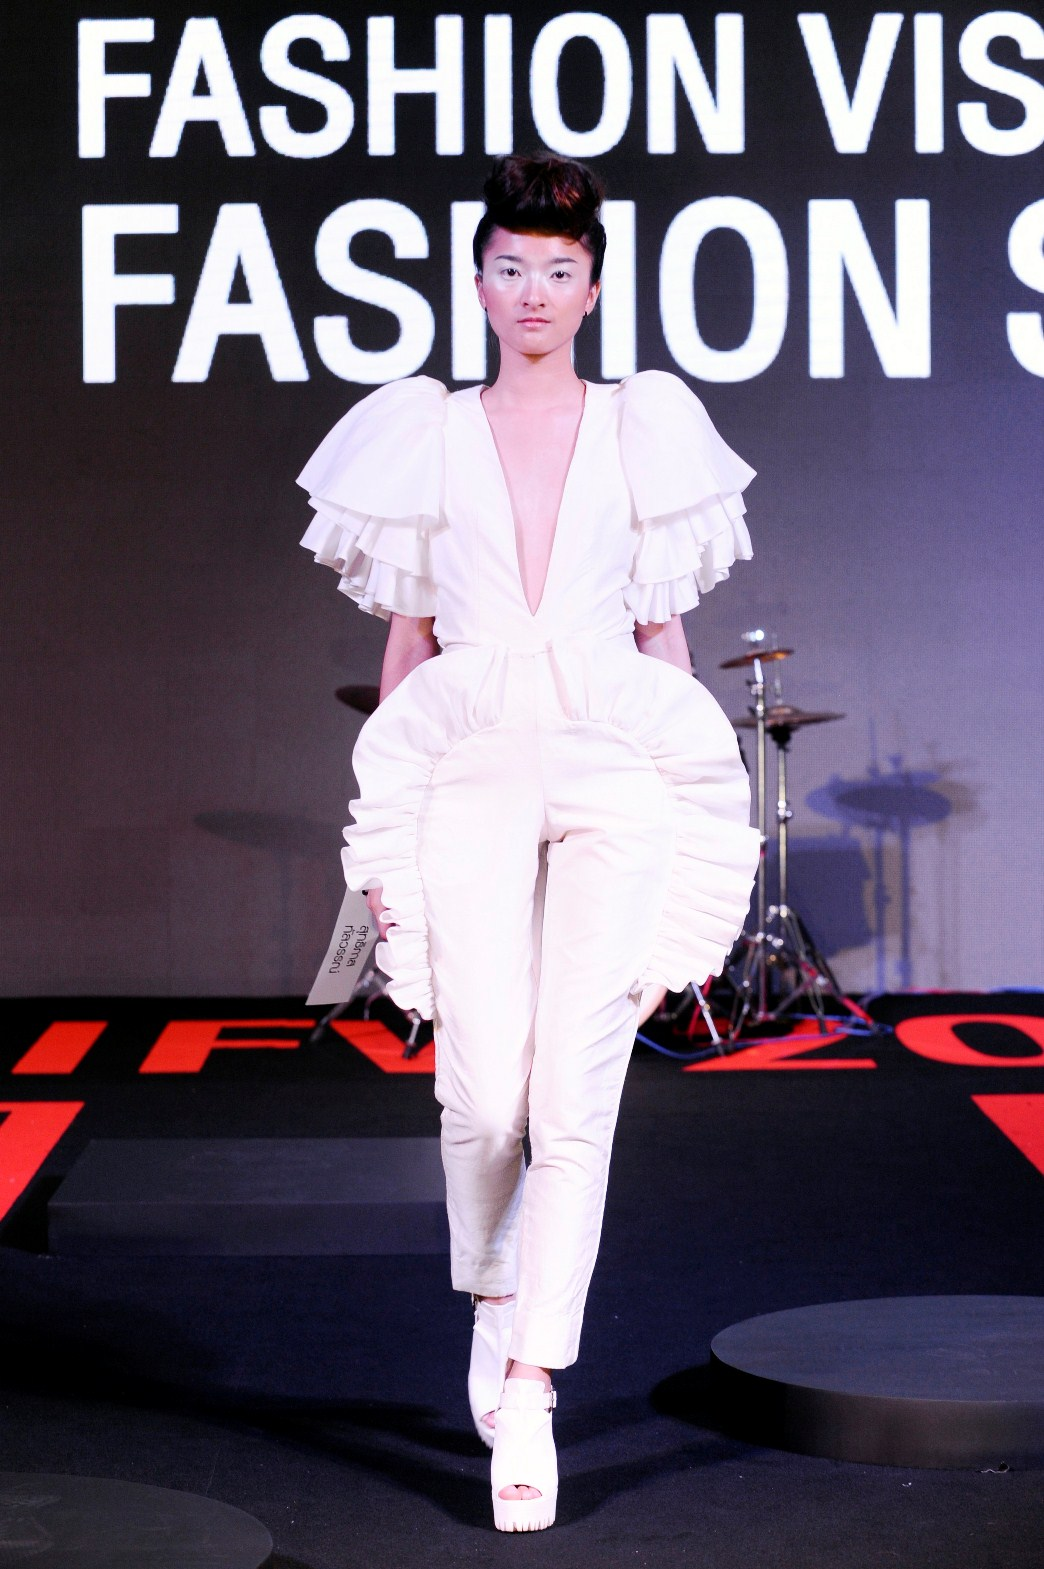 7. Runway Road Fashion Show No.2 Curated by Jitsing Somboon